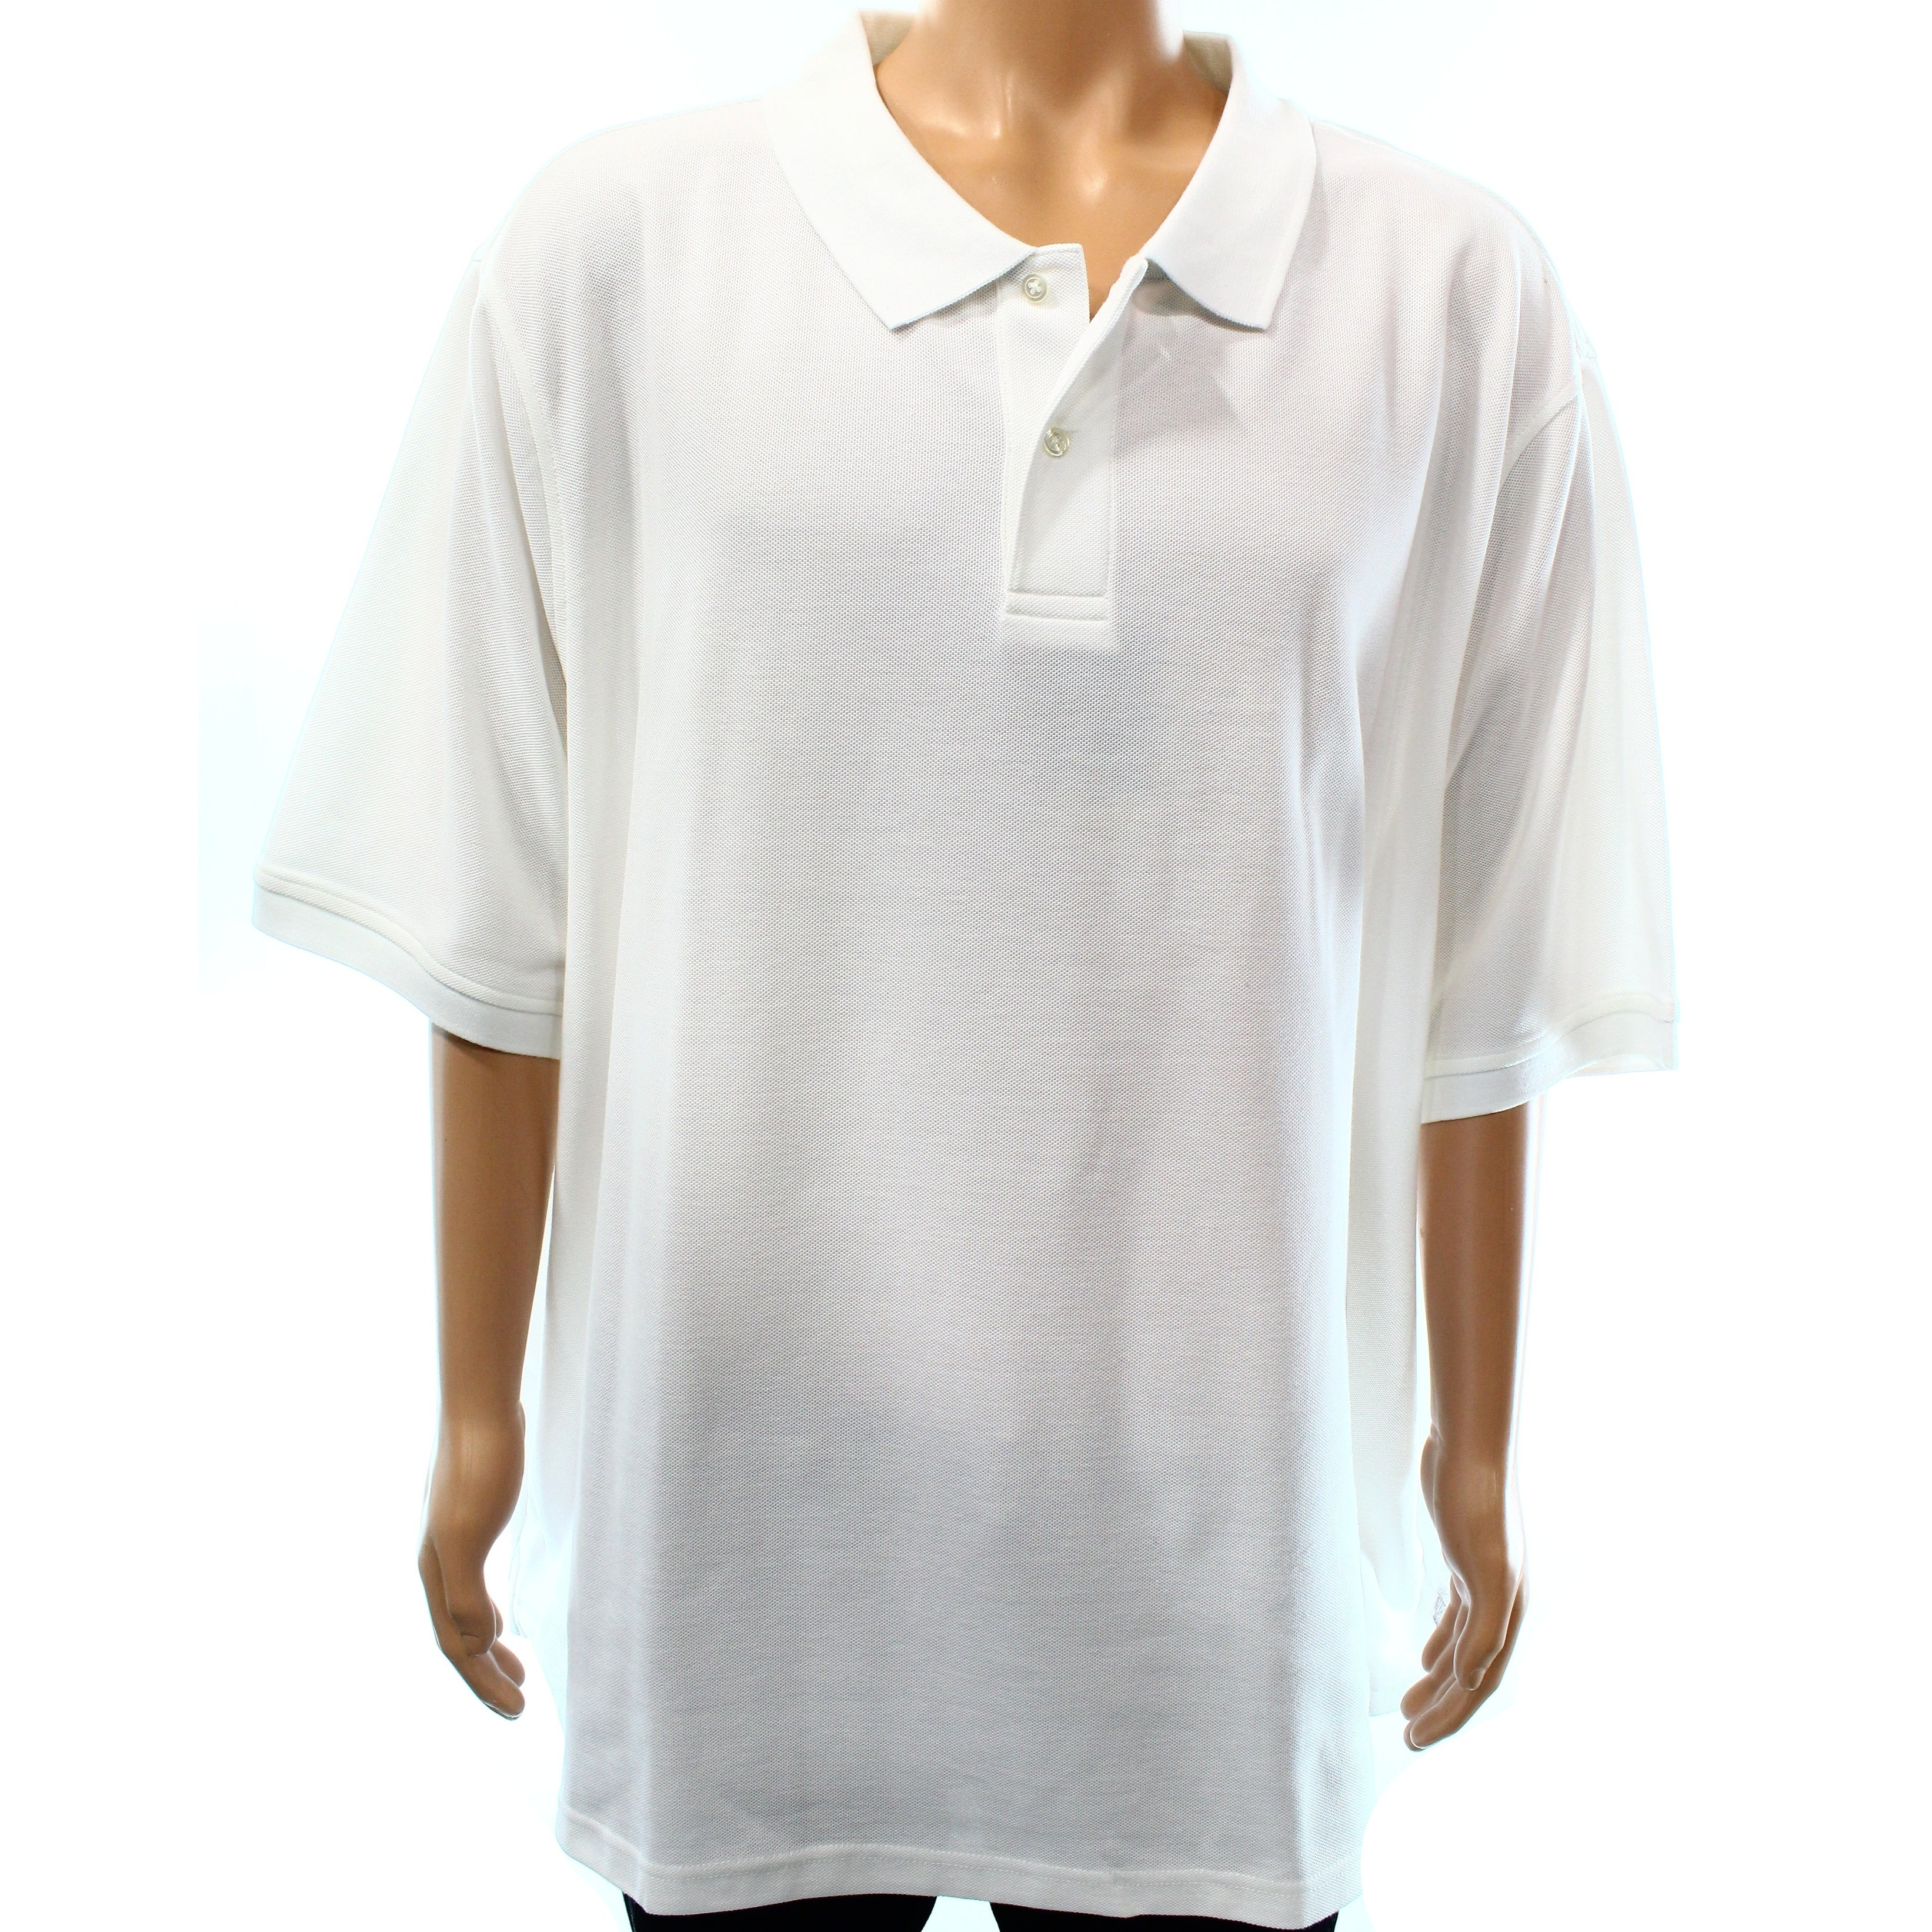 Shop Club Room New Bright White Mens Size 3xlt Short Sleeve Knit